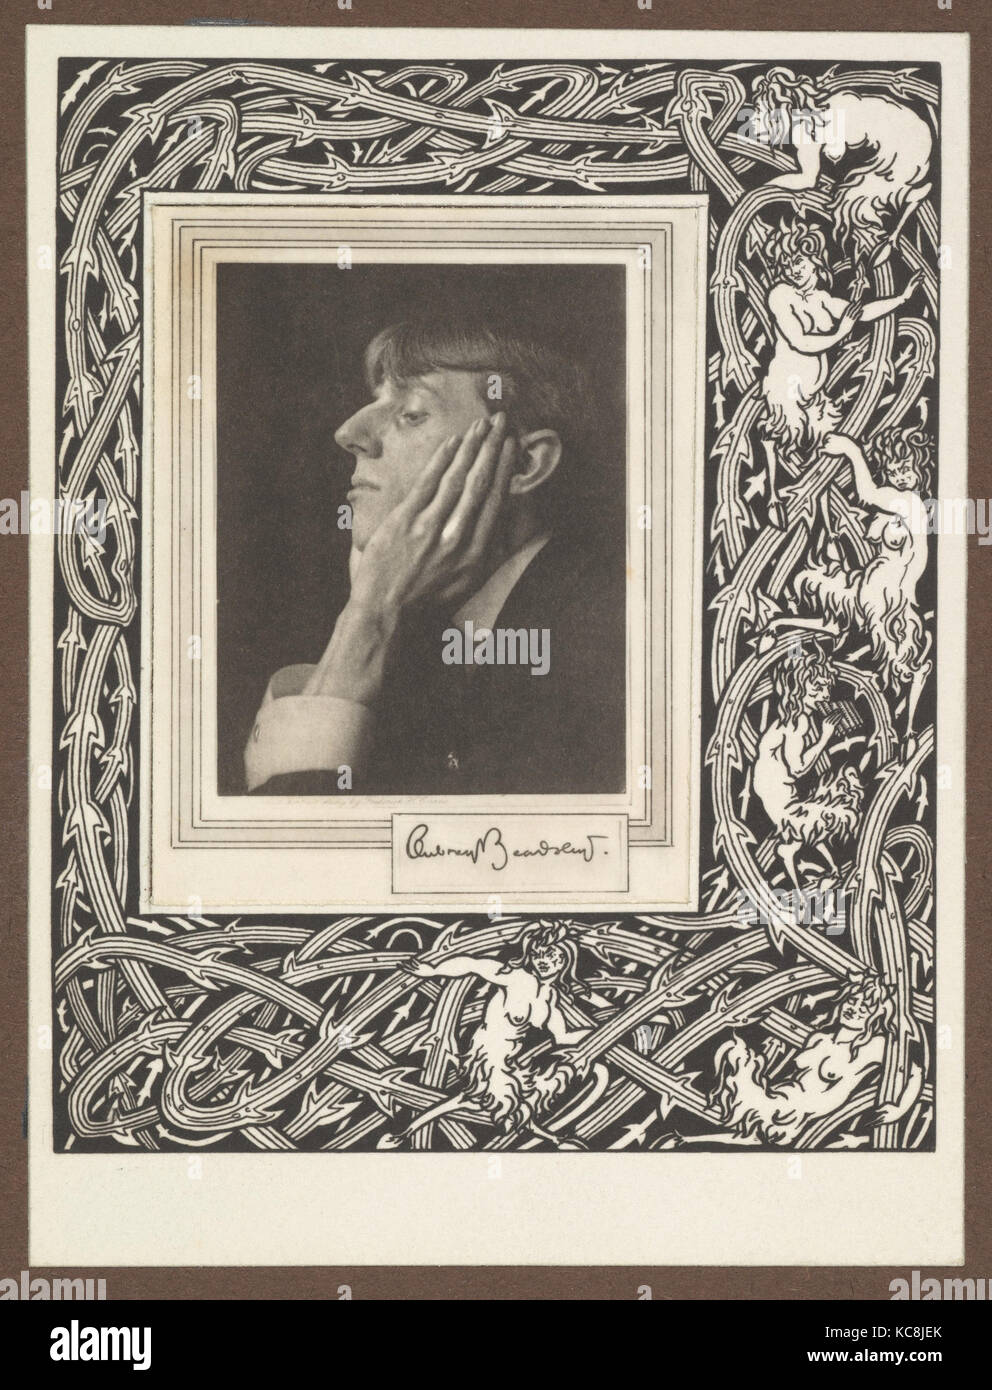 e44f15aa5a3 Grotesques by Aubrey Beardsley. Facsimile Platinum Prints by Frederick H.  Evans from the Twelve